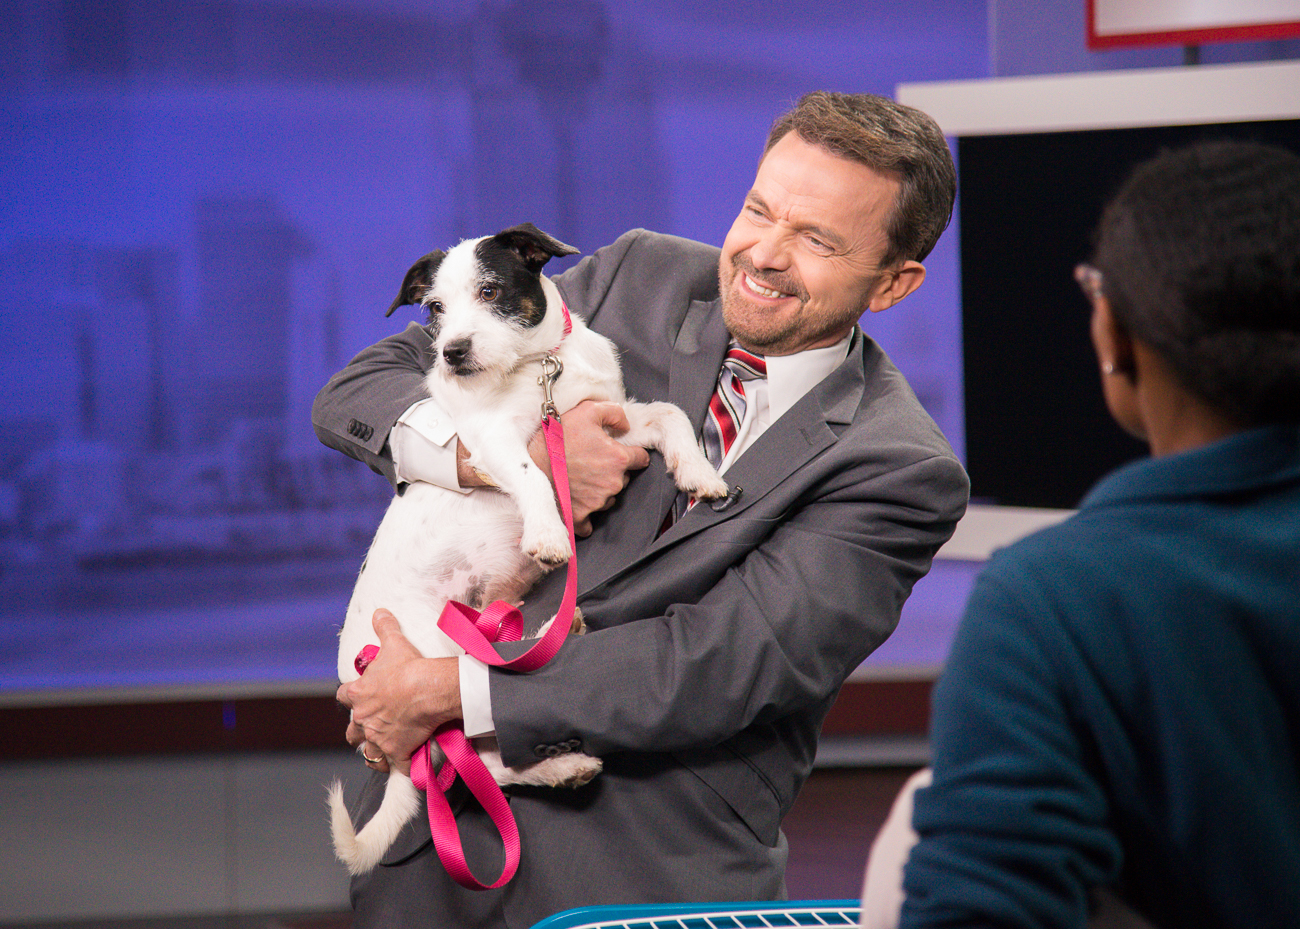 PICTURED: Paul Poteet, Local 12 meteorologist, holding Lucy, a 2-year-old Jack Russell terrier / ABOUT: The Society for the Prevention of Cruelty to Animals (SPCA) is an organization that seeks out new, loving owners for adoptable, adorable dogs and cats. While the pets in these photos are likely already adopted by the time this is published, you can find other dogs and cats like them by visiting SPCAcincinnati.org. The organization receives new animals often; Local 12 WKRC-TV features several of those pets every Tuesday on their morning and evening broadcasts and every Saturday during the morning broadcast. / Image: Phil Armstrong, Cincinnati Refined // Published: 10.24.18